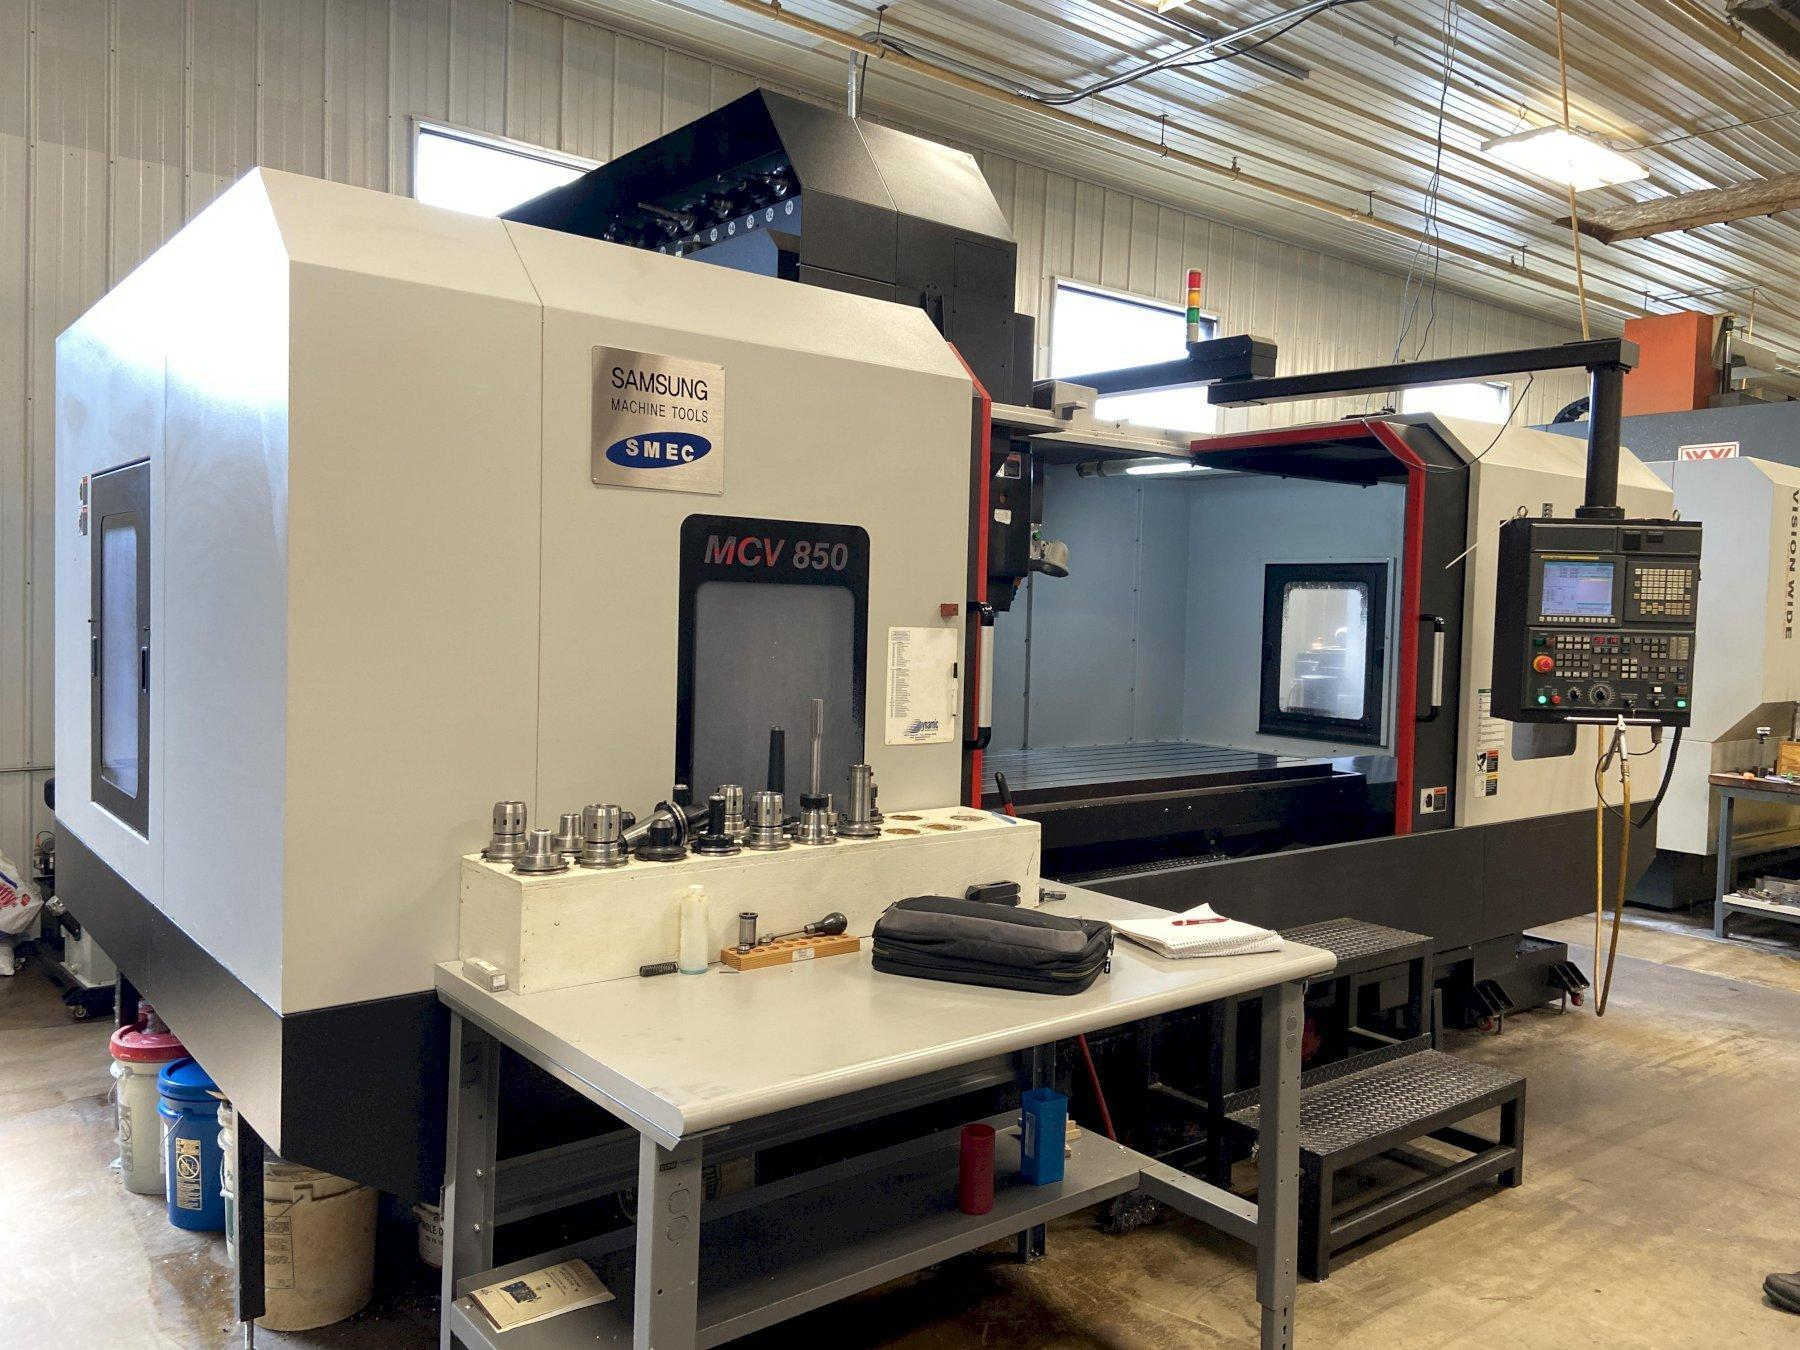 Samsung MCV-850 CNC Vertical Machining Center, Fanuc 0iMD, 79